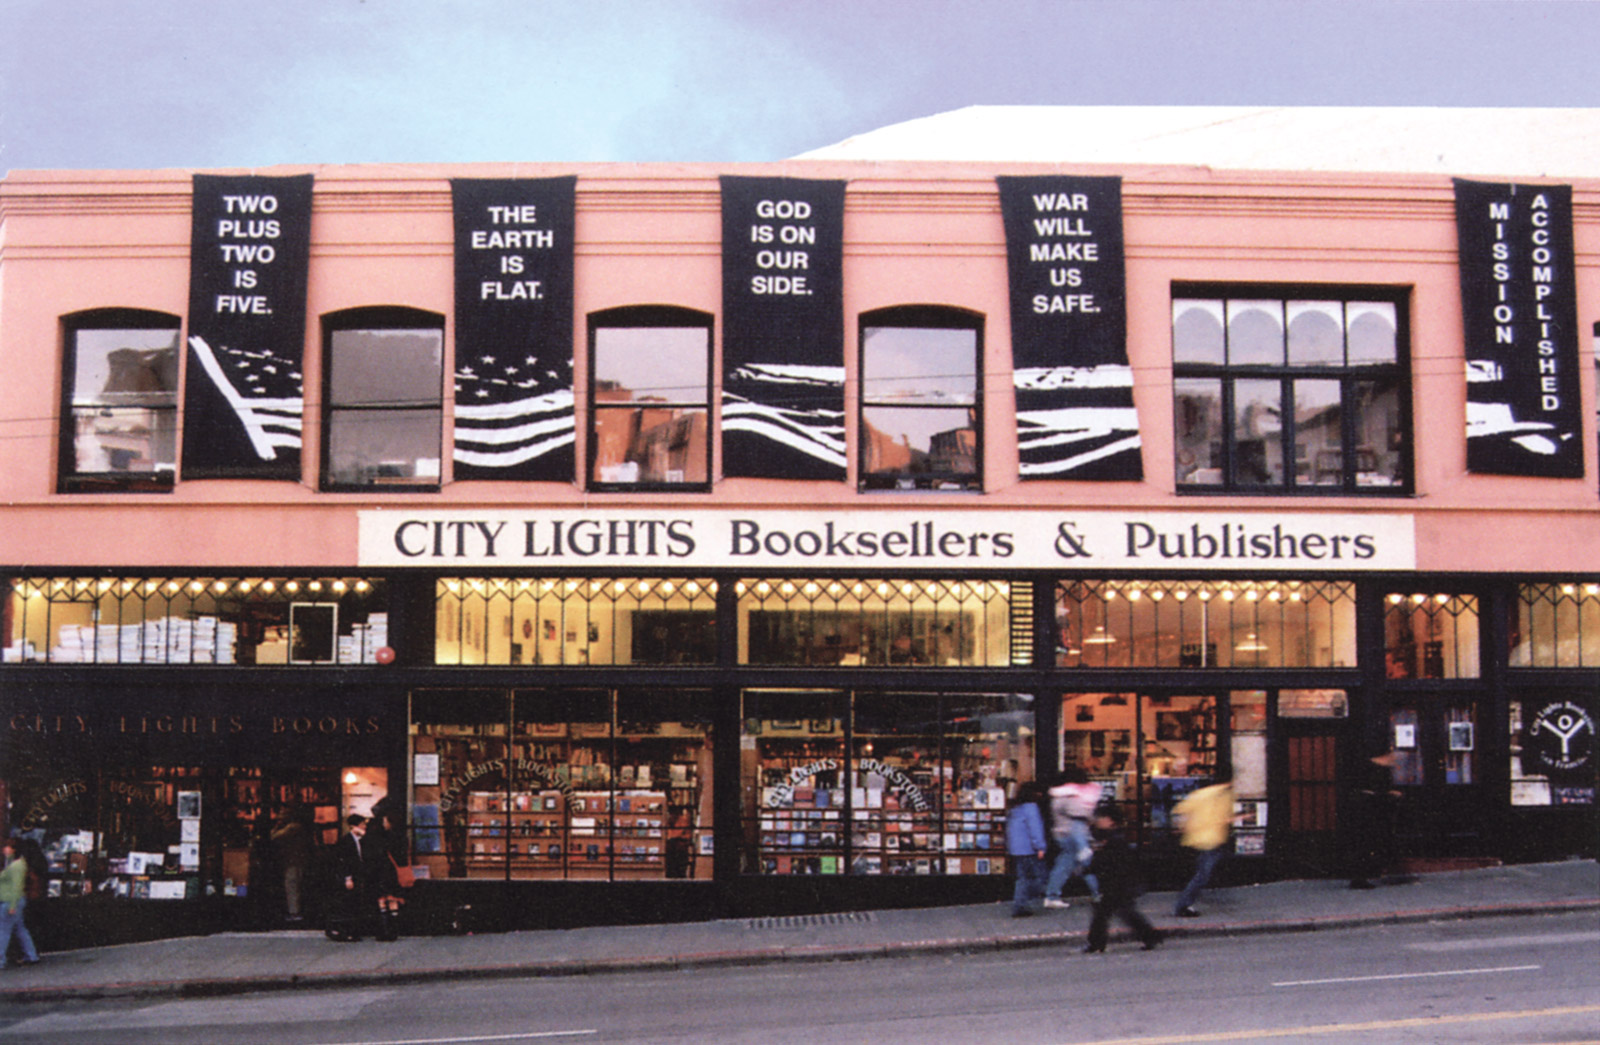 People walk by a lighted up City Lights storefront that is decorated with large black banners